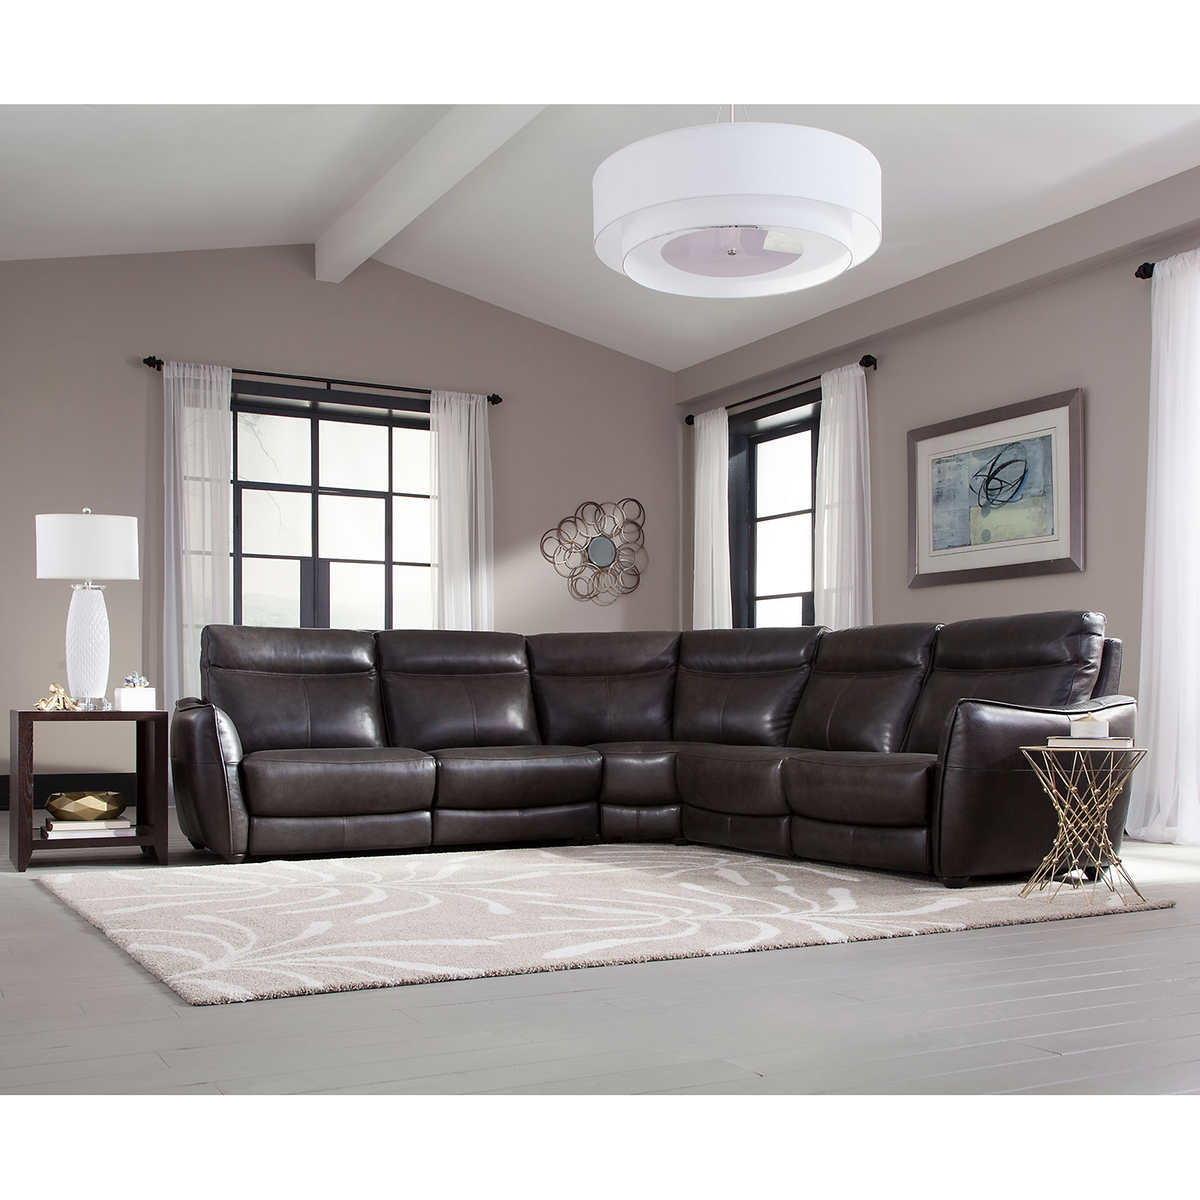 logan creek top grain leather reclining sectional best leather furniture manufacturers